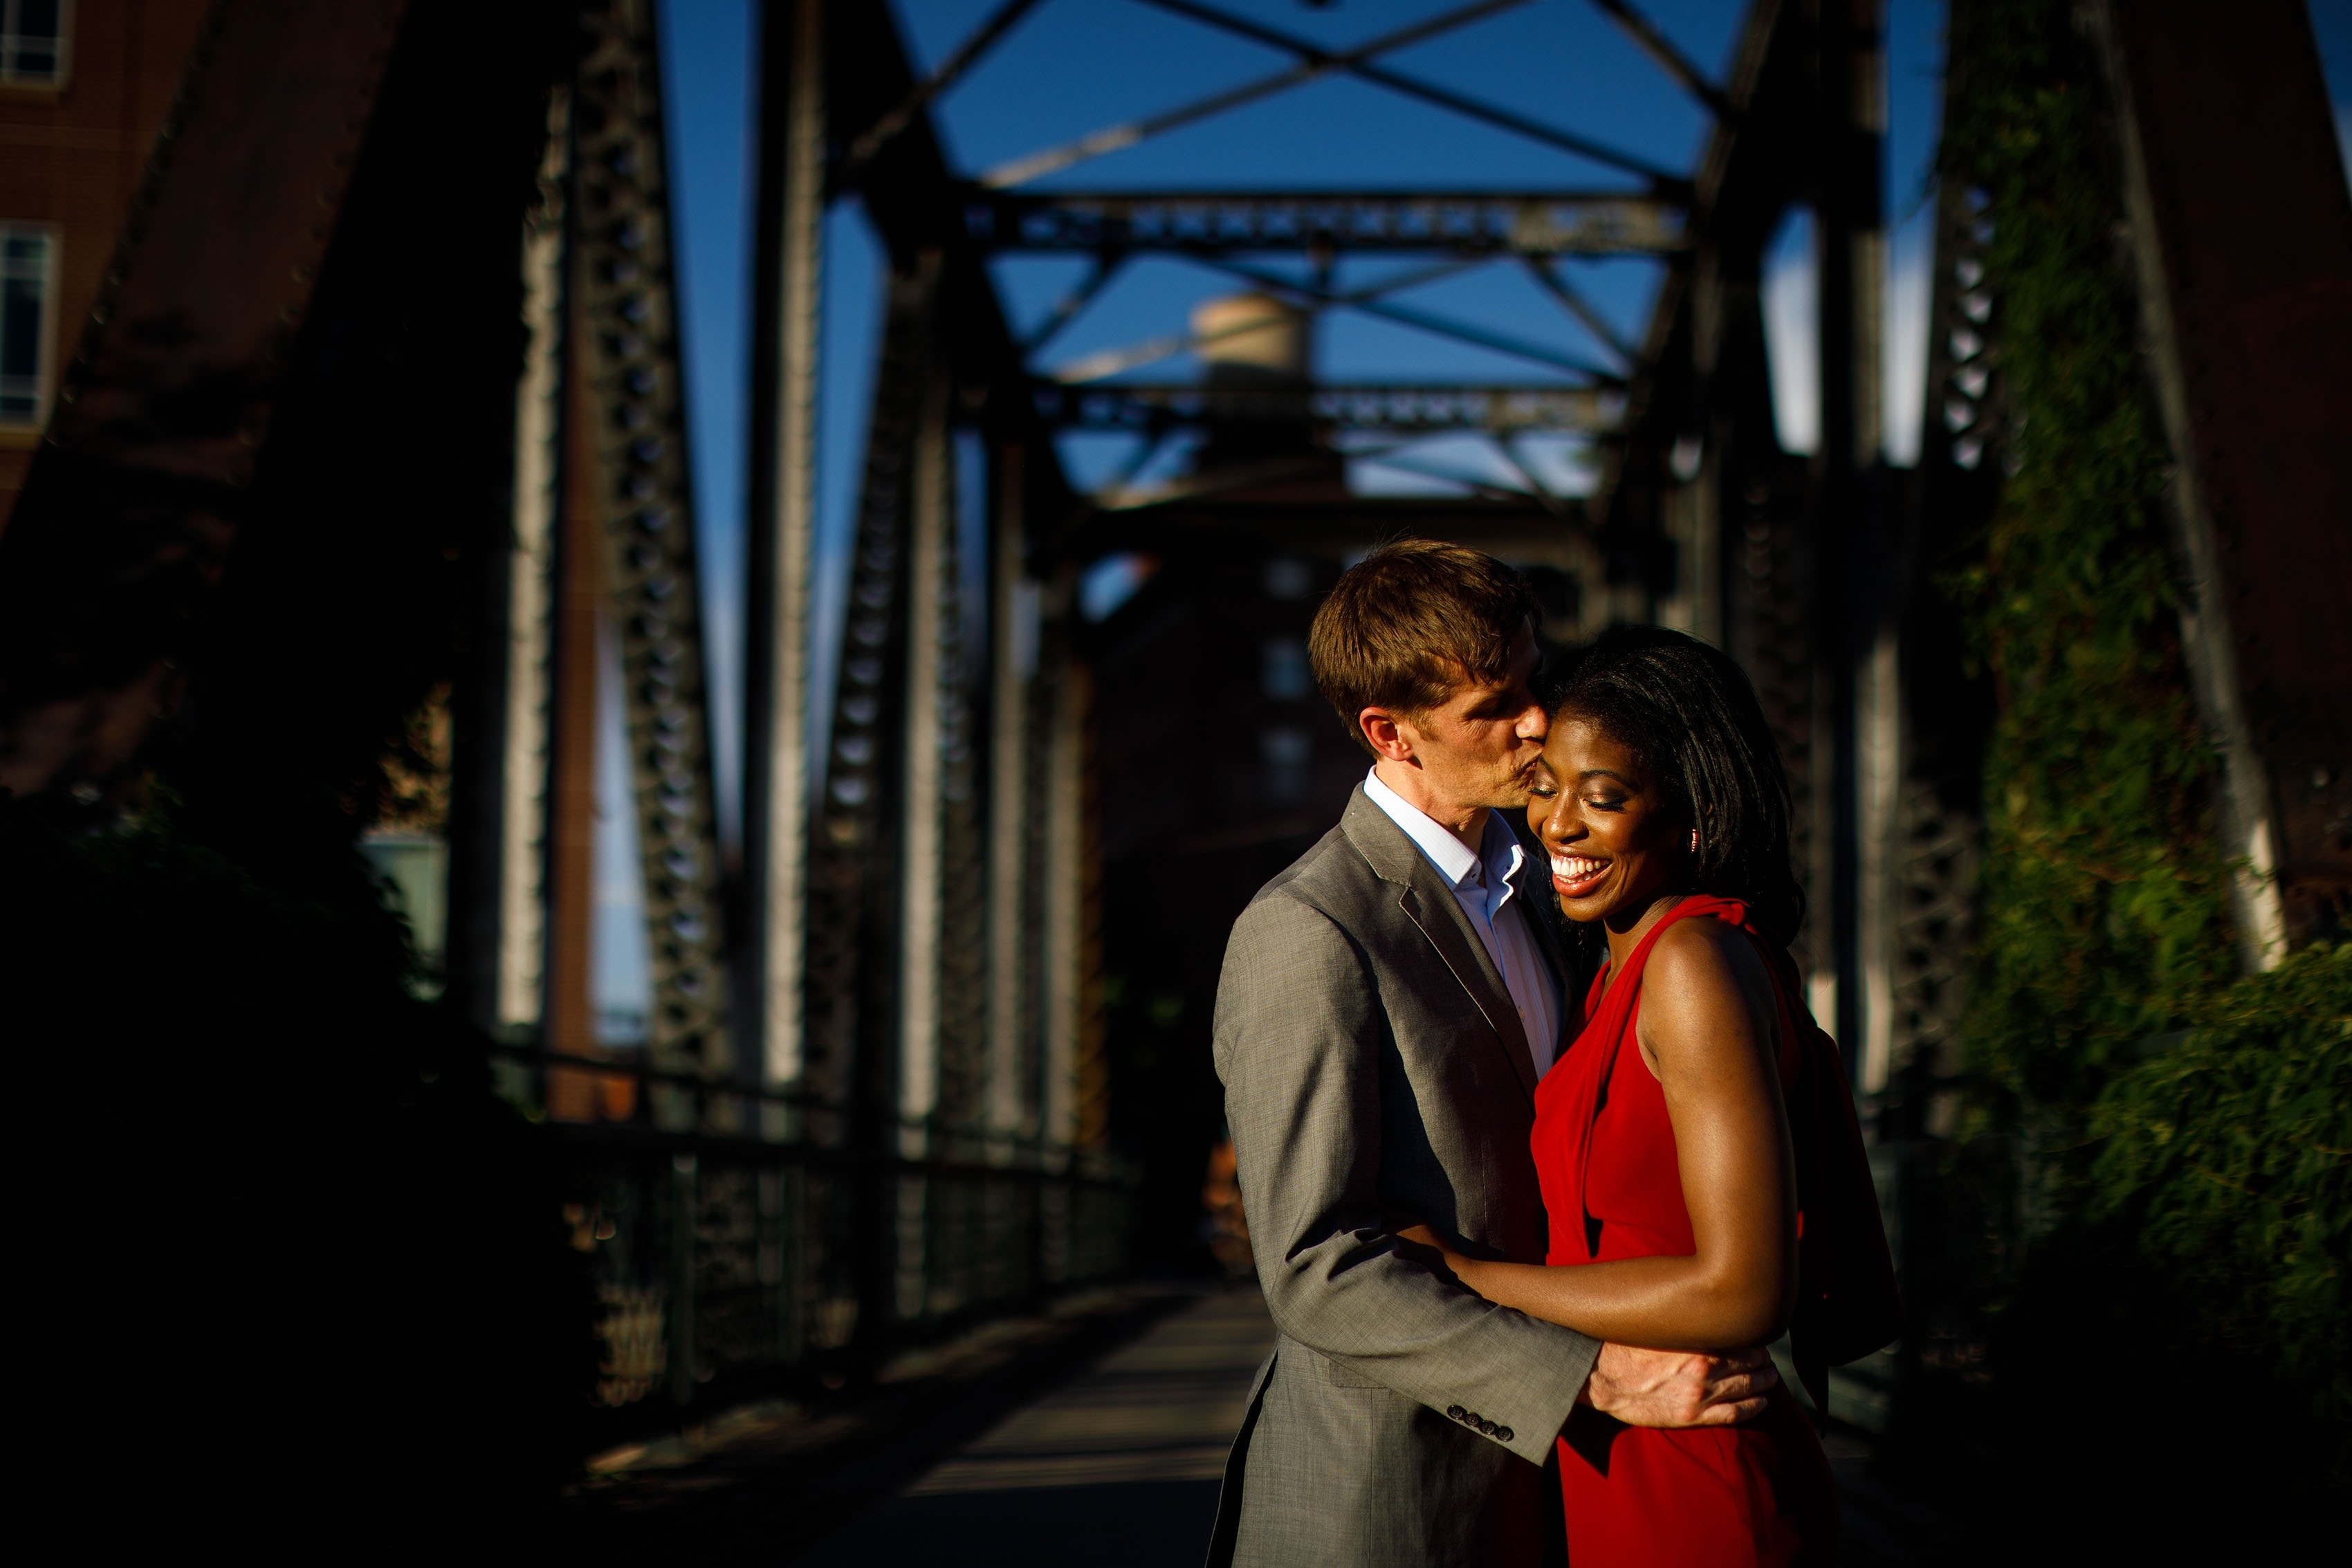 Henry kisses Ewo during golden hour at the Wynkoop Street Bridge in downtown Denver's Lodo neighborhood during their engagement session